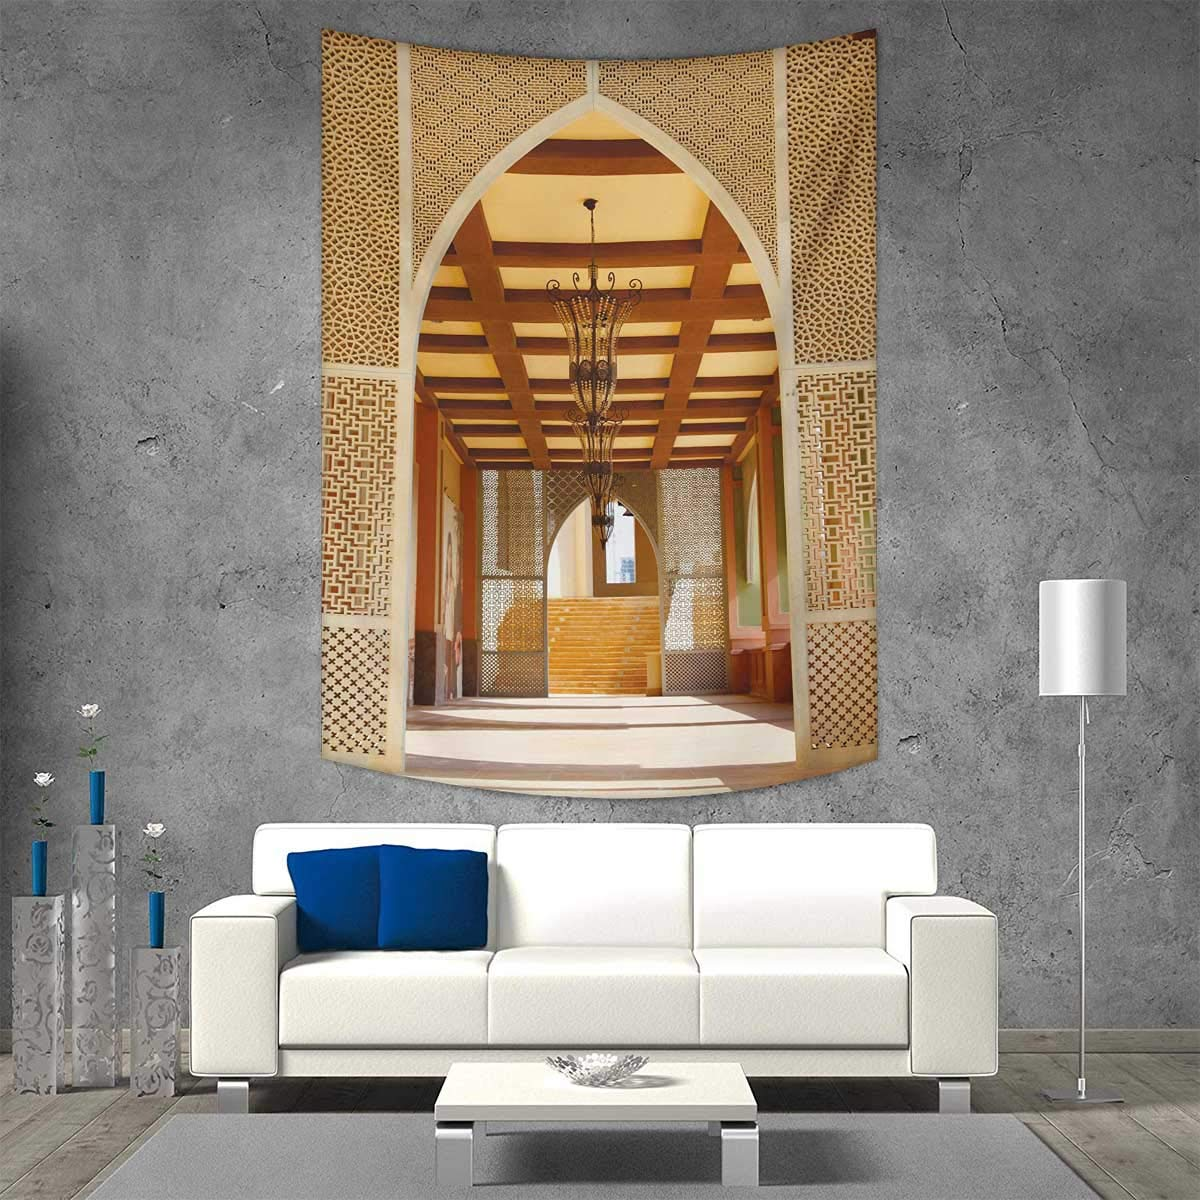 smallbeefly Arabian Vertical Version Tapestry Traditional Arabian Architecture in Doha Qatar Middle East Oriental Landmark Hotel Throw, Bed, Tapestry, or Yoga Blanket 40W x 60L INCH Pale Brown